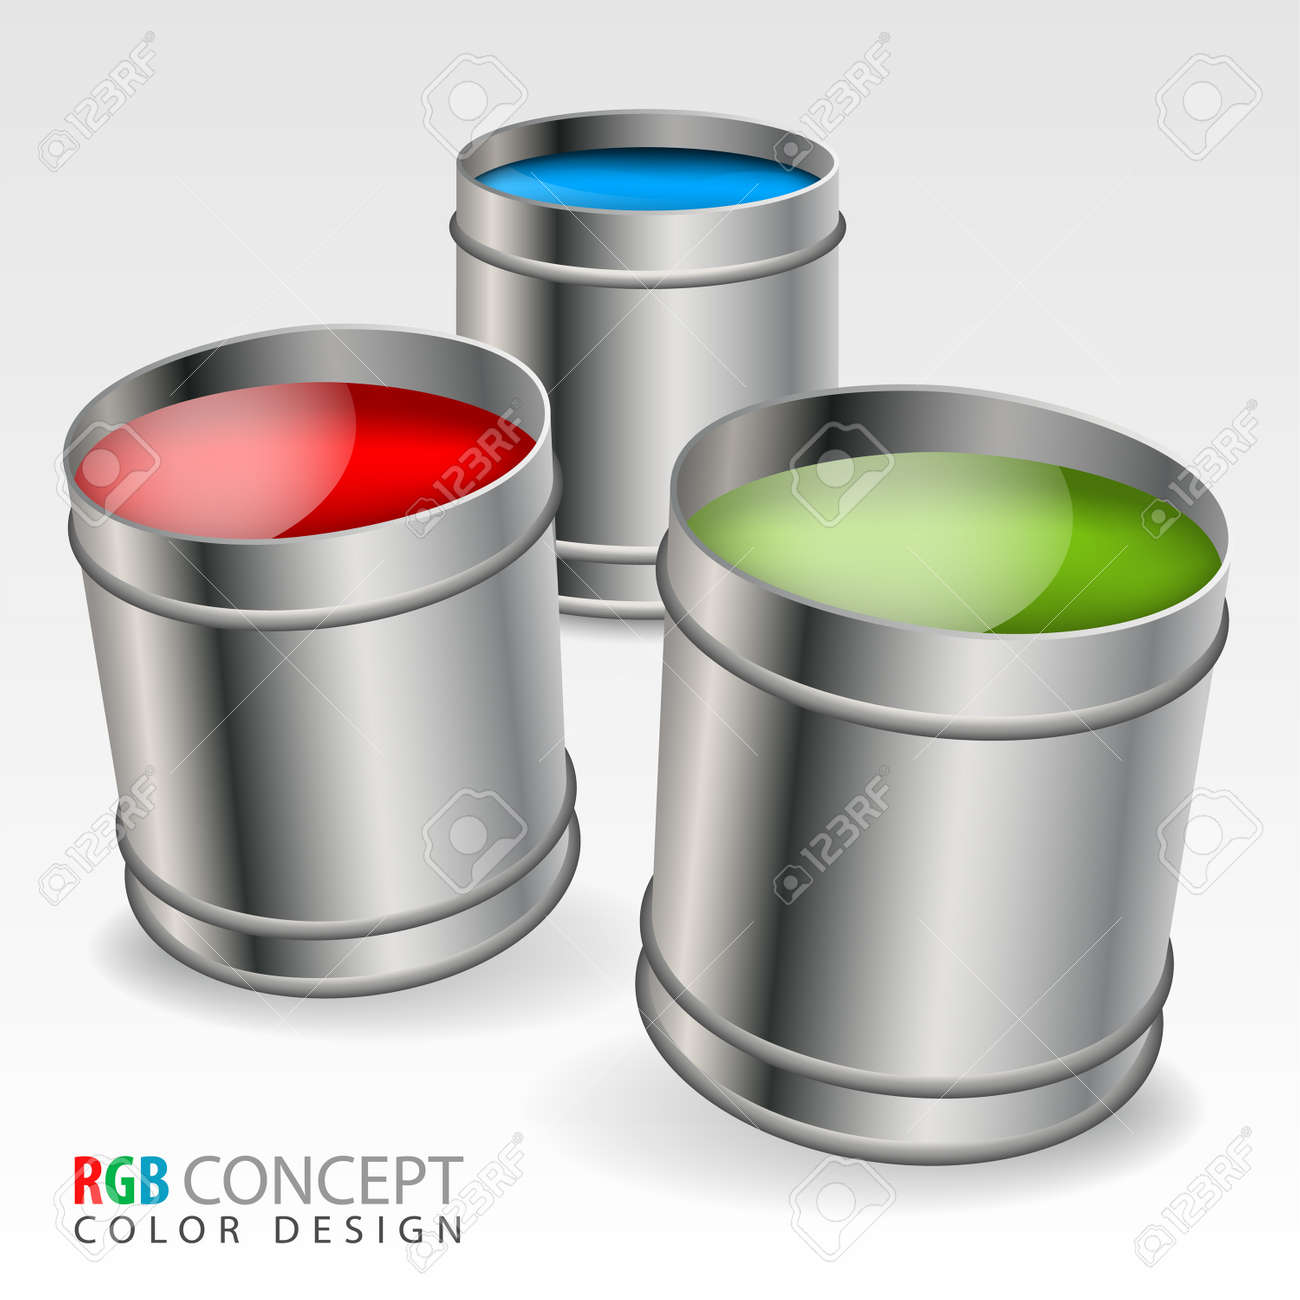 Cans of paint in RGB colors,  concept Stock Vector - 15540351